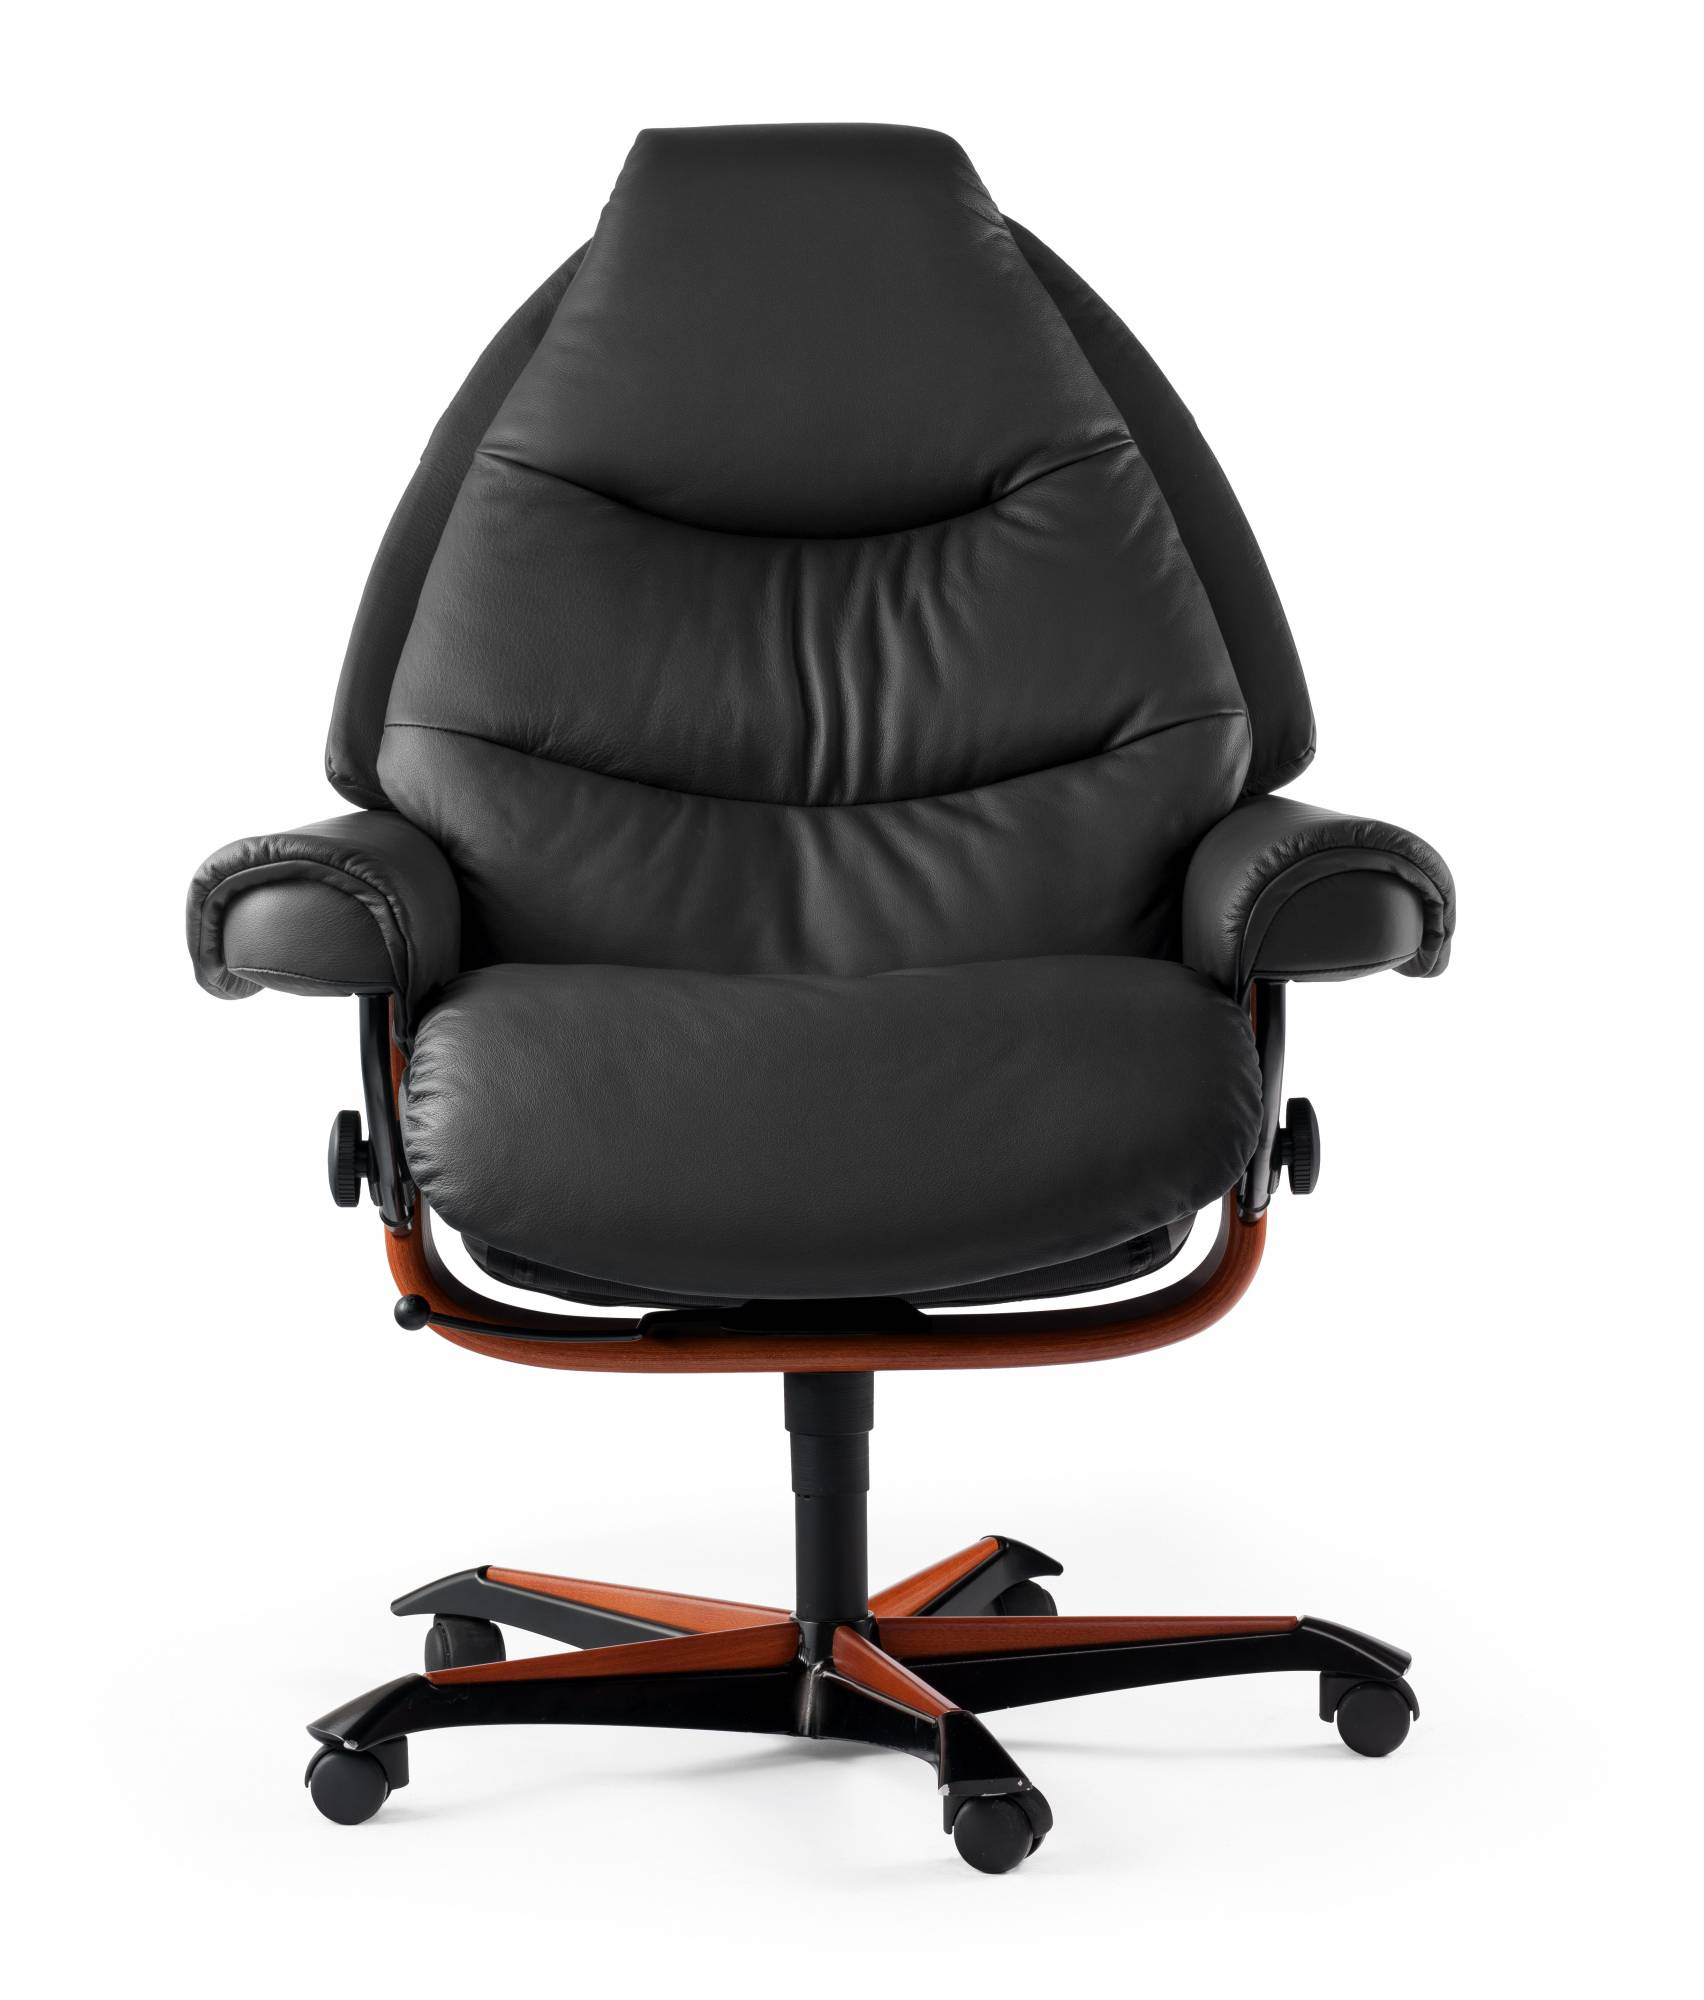 stressless office chairs uk floor mat for chair voyager rodgers of york